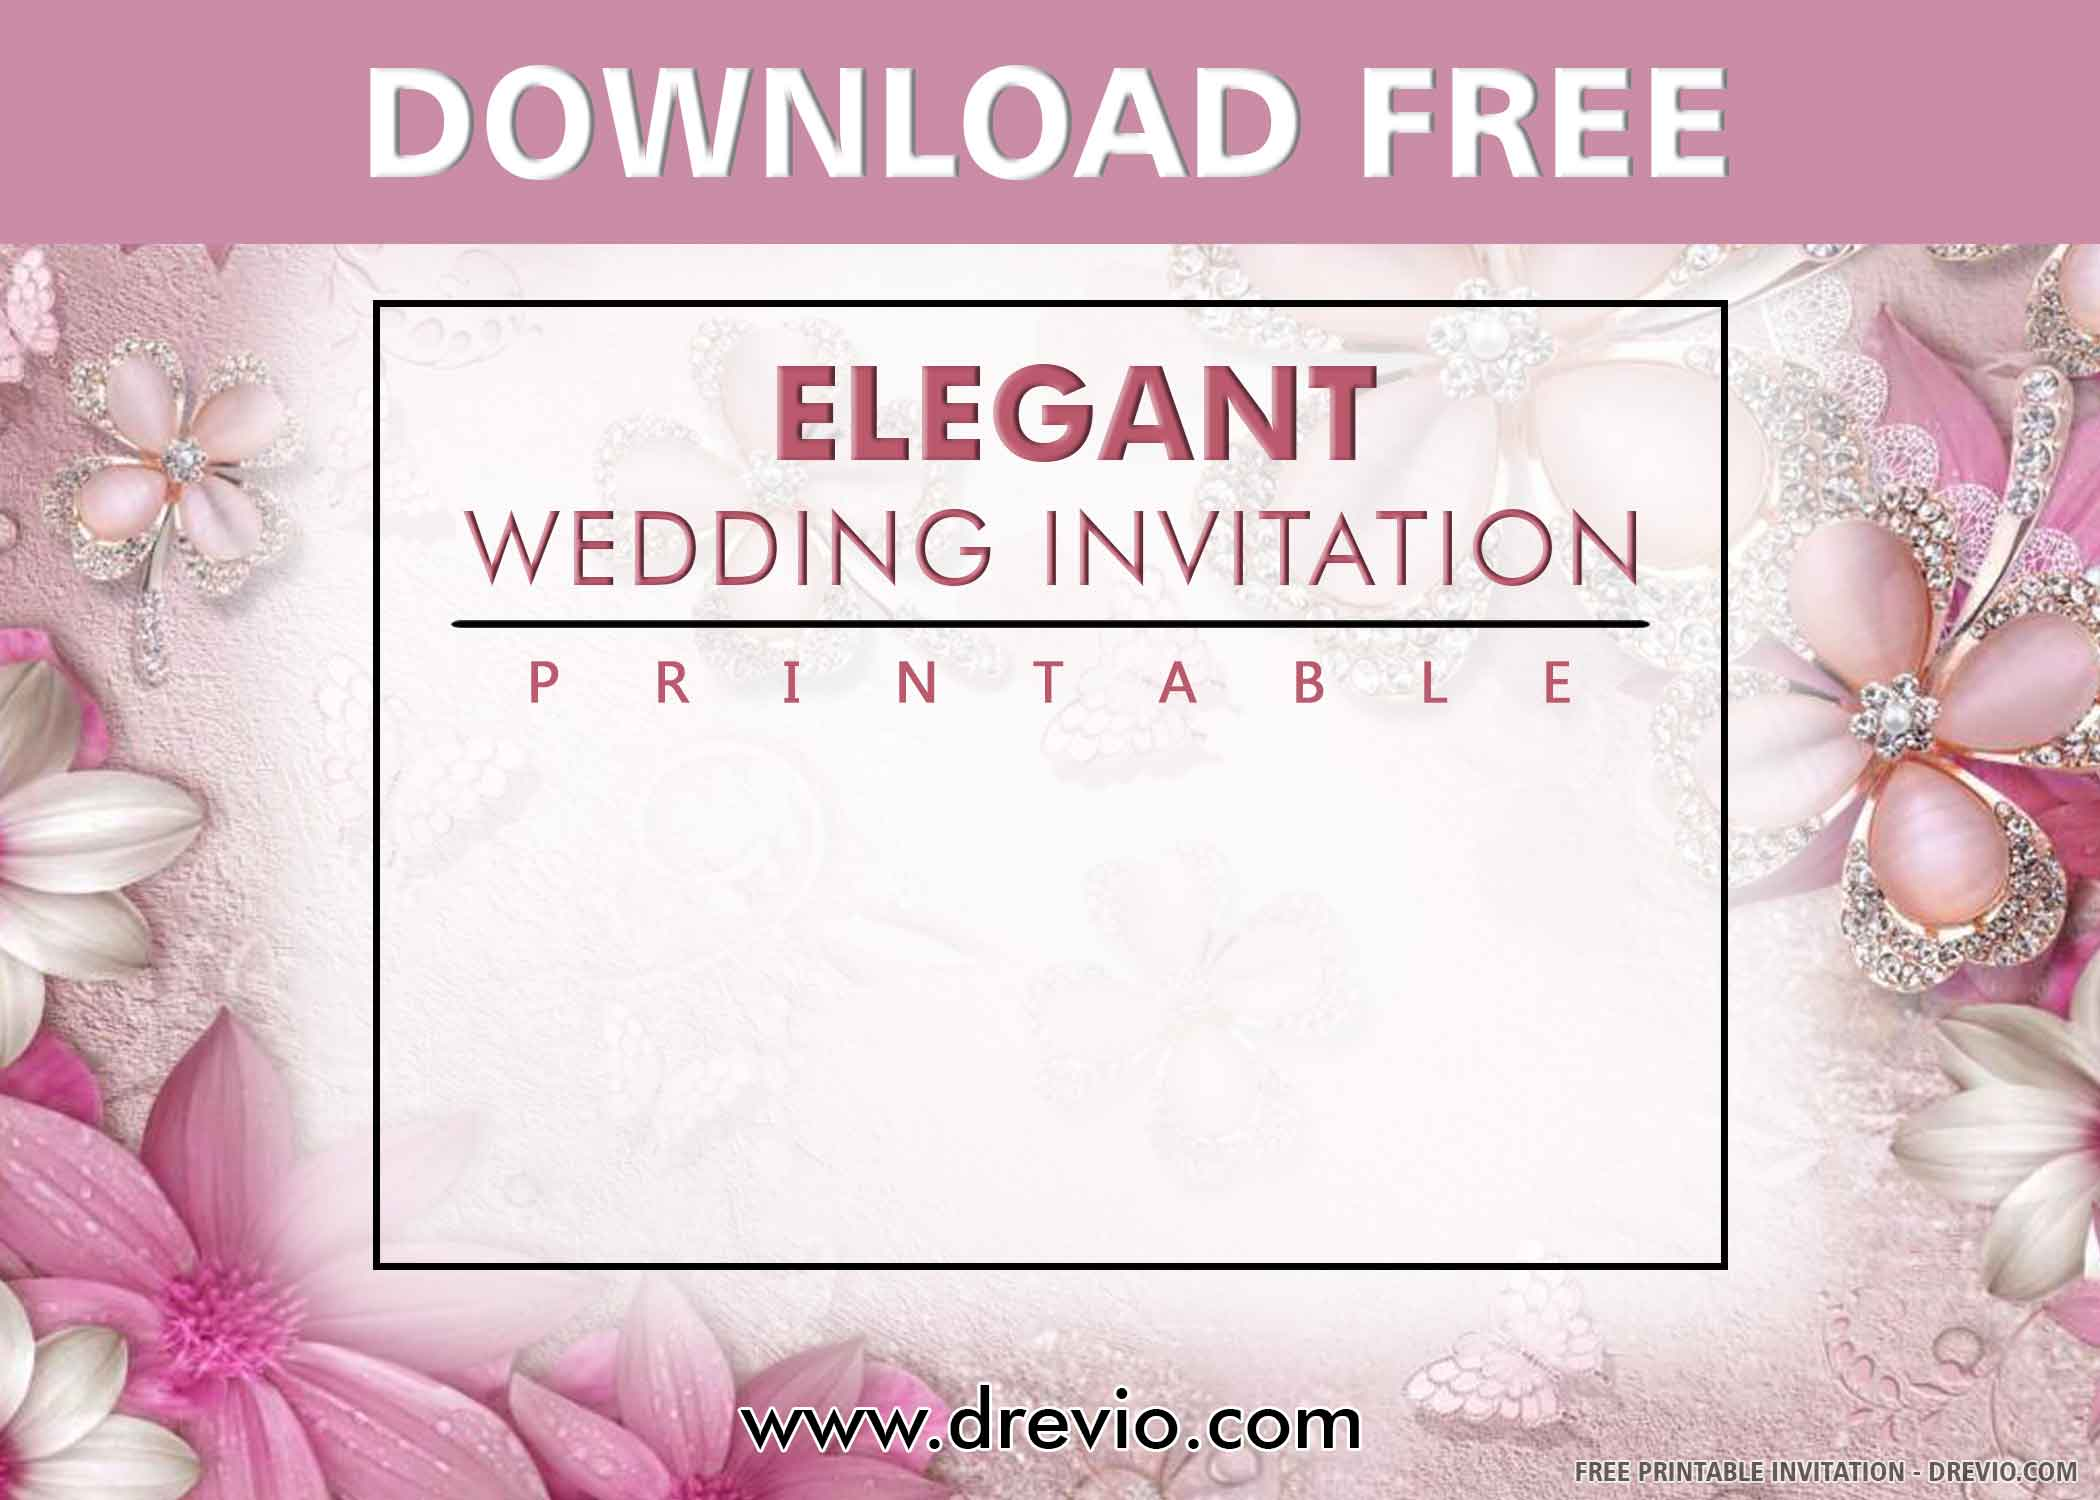 Free Printable Elegant Floral Wedding Invitation Templates Drevio